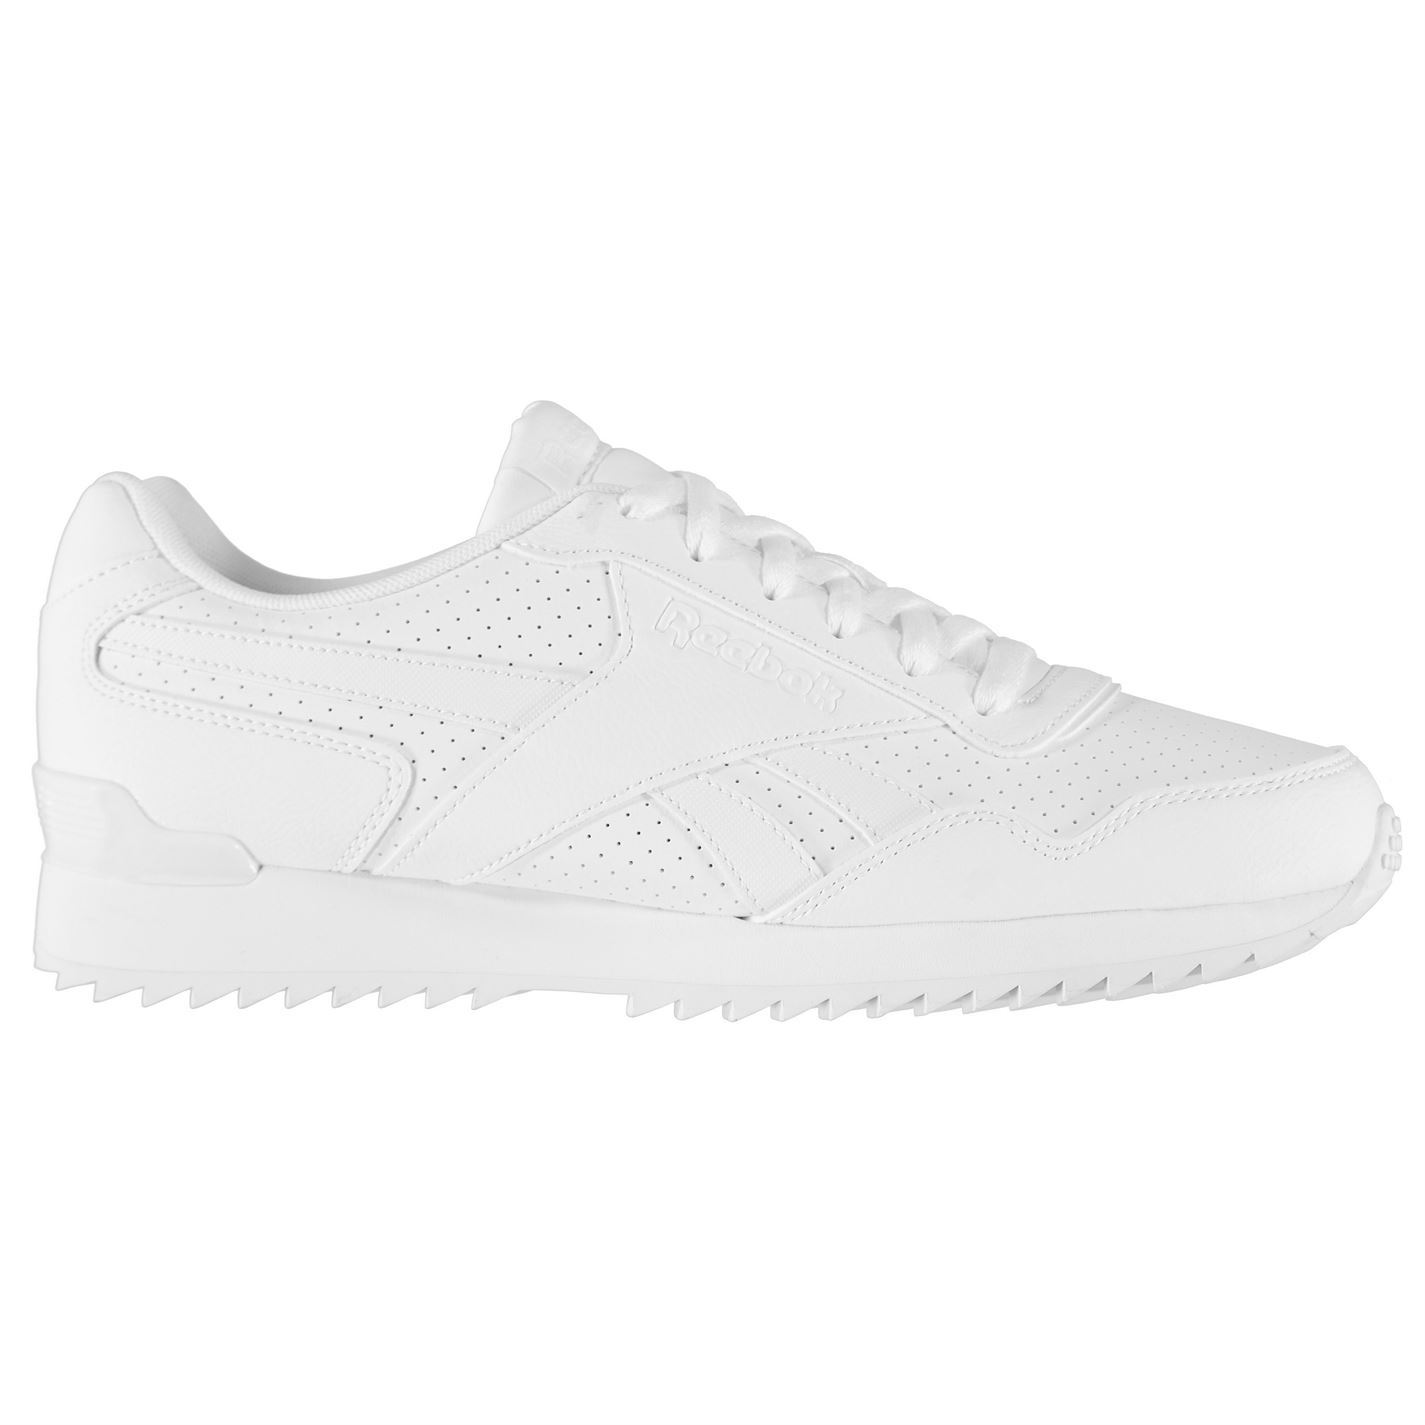 ... Reebok Royal Glide Ripple Clip Trainers Mens White Sports Shoes Sneakers  ... 945aad9c3